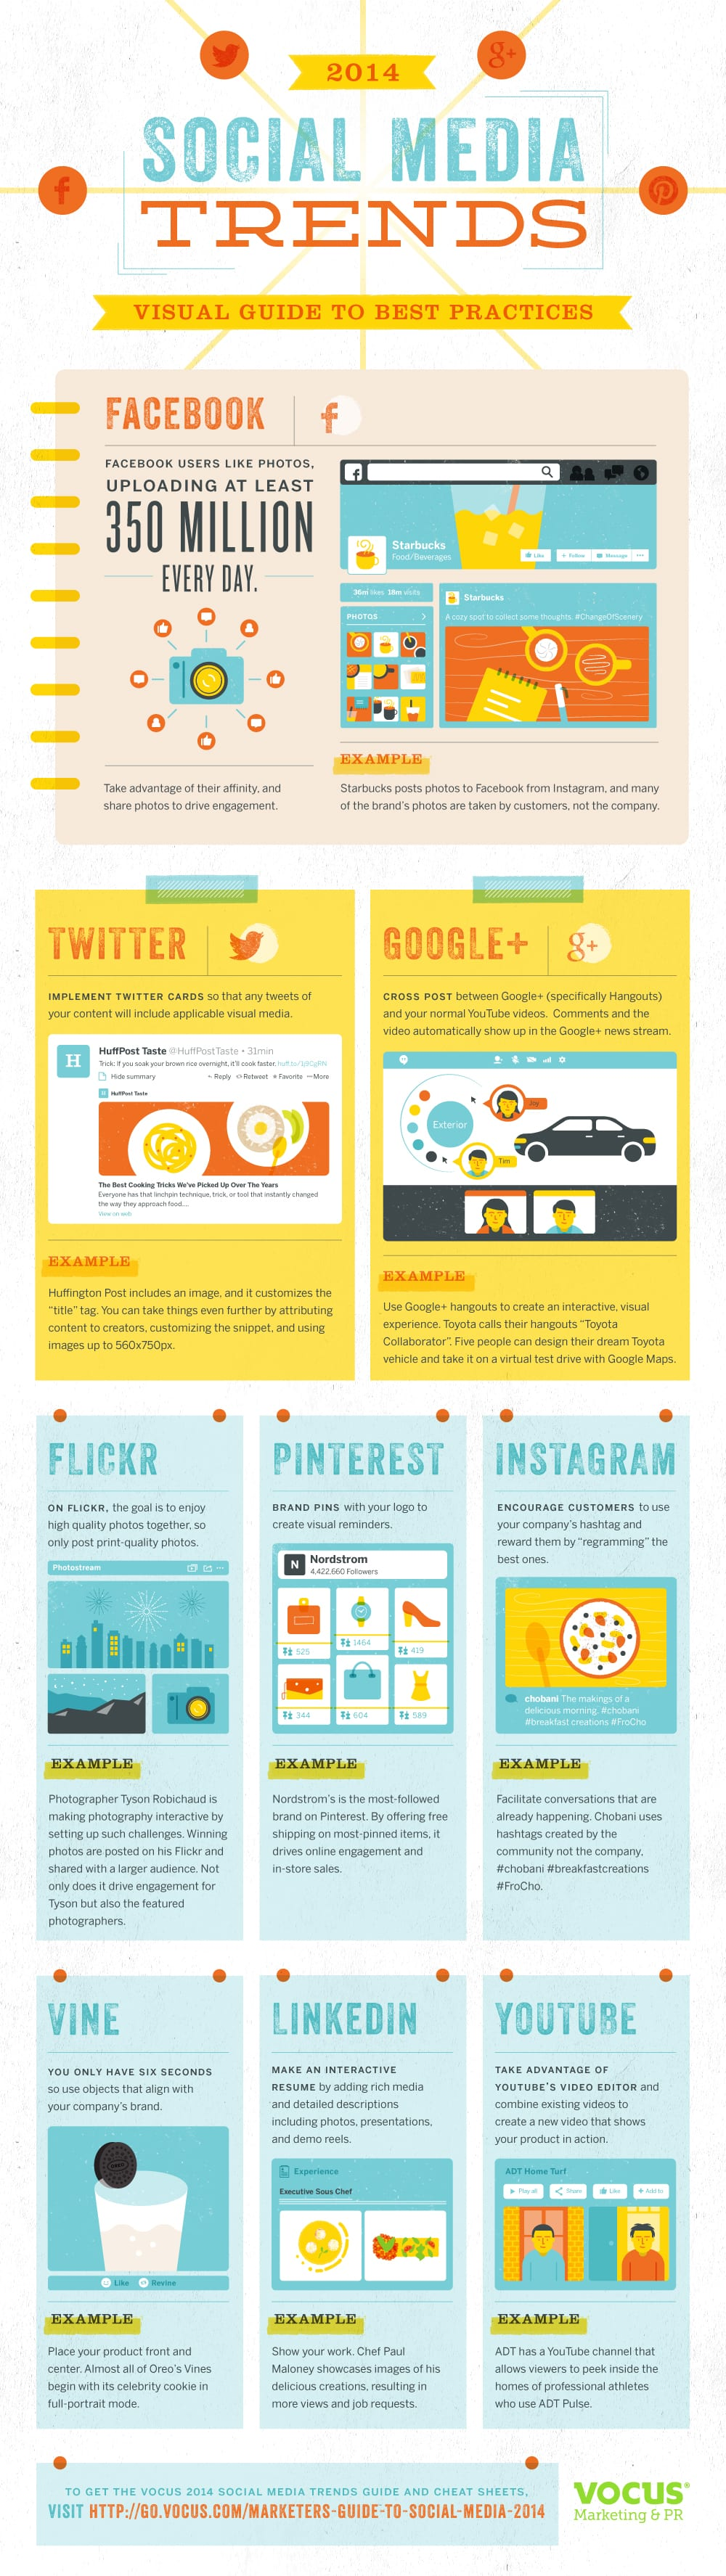 Social media trends 2014 - voorbeelden en tips [infographic]